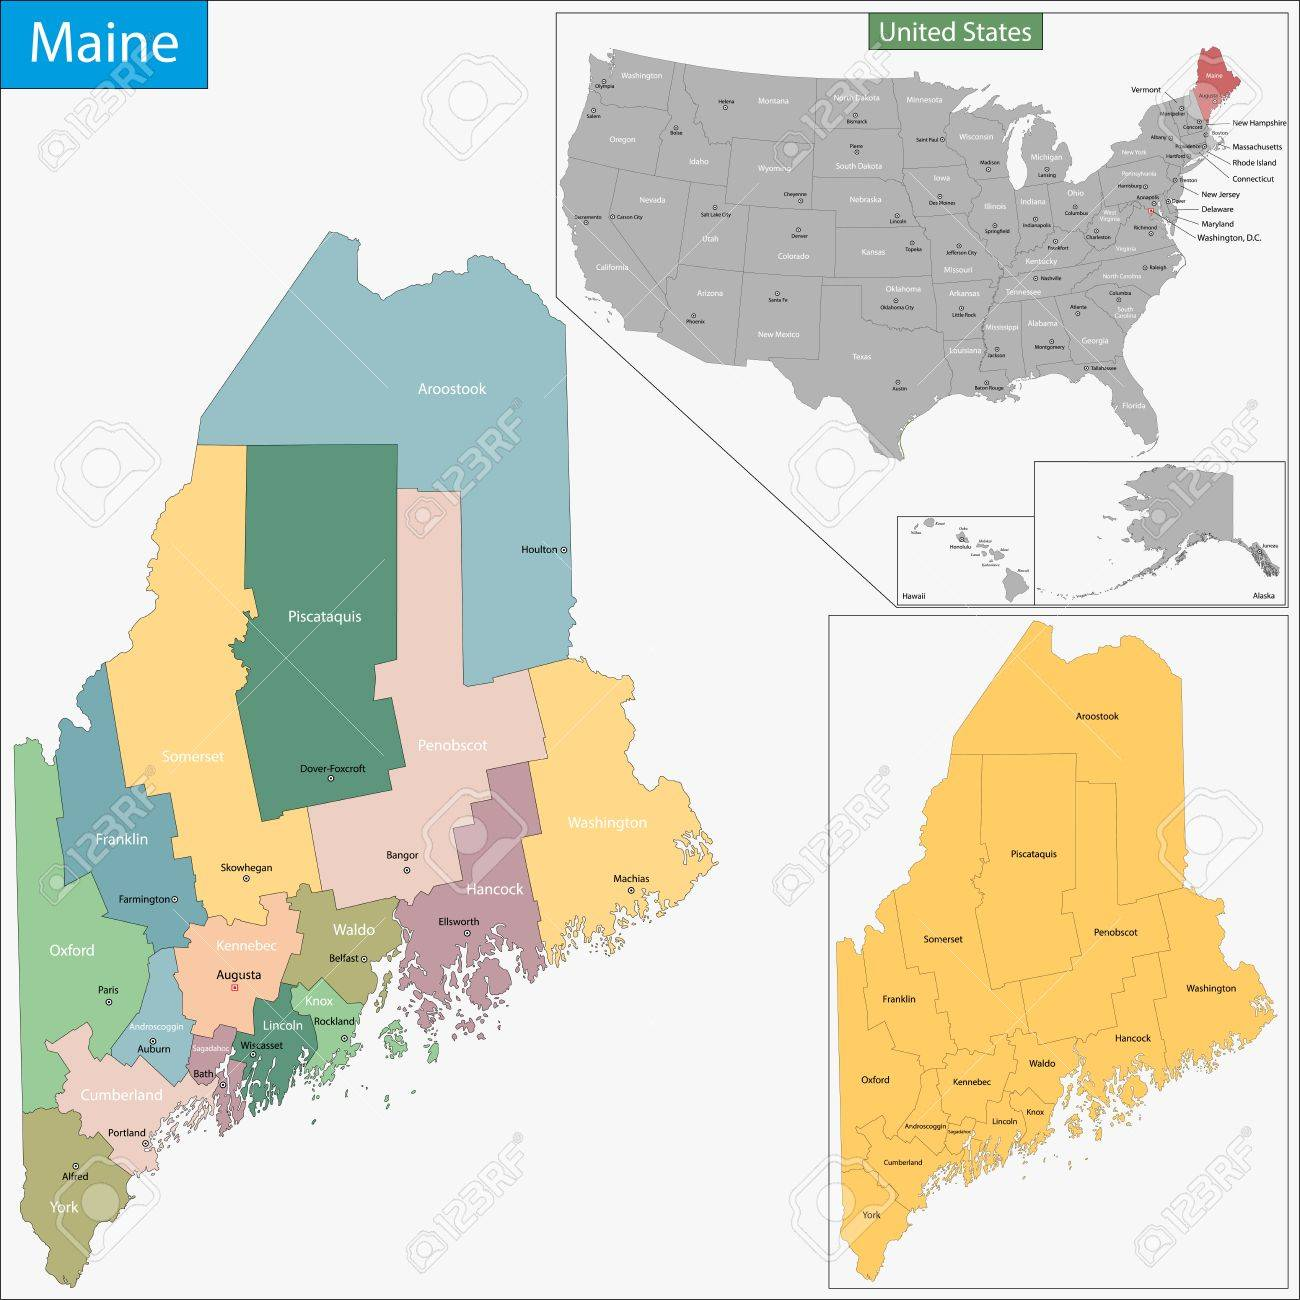 Map Of Maine State Designed In Illustration With The Counties - Main state map